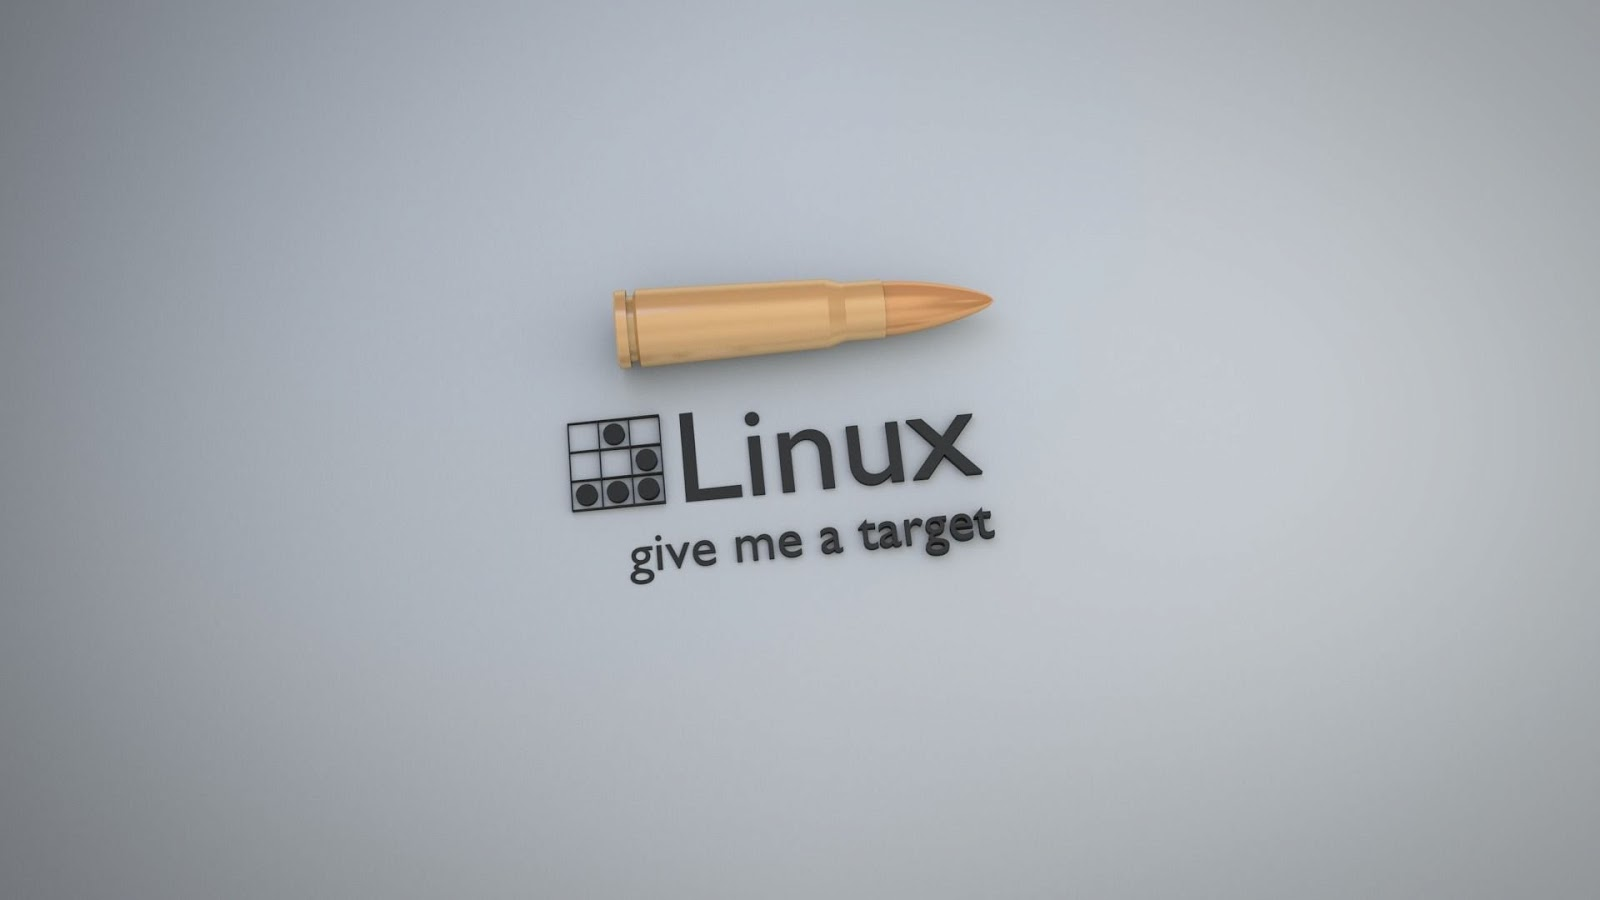 Creative Linux Give me a Target